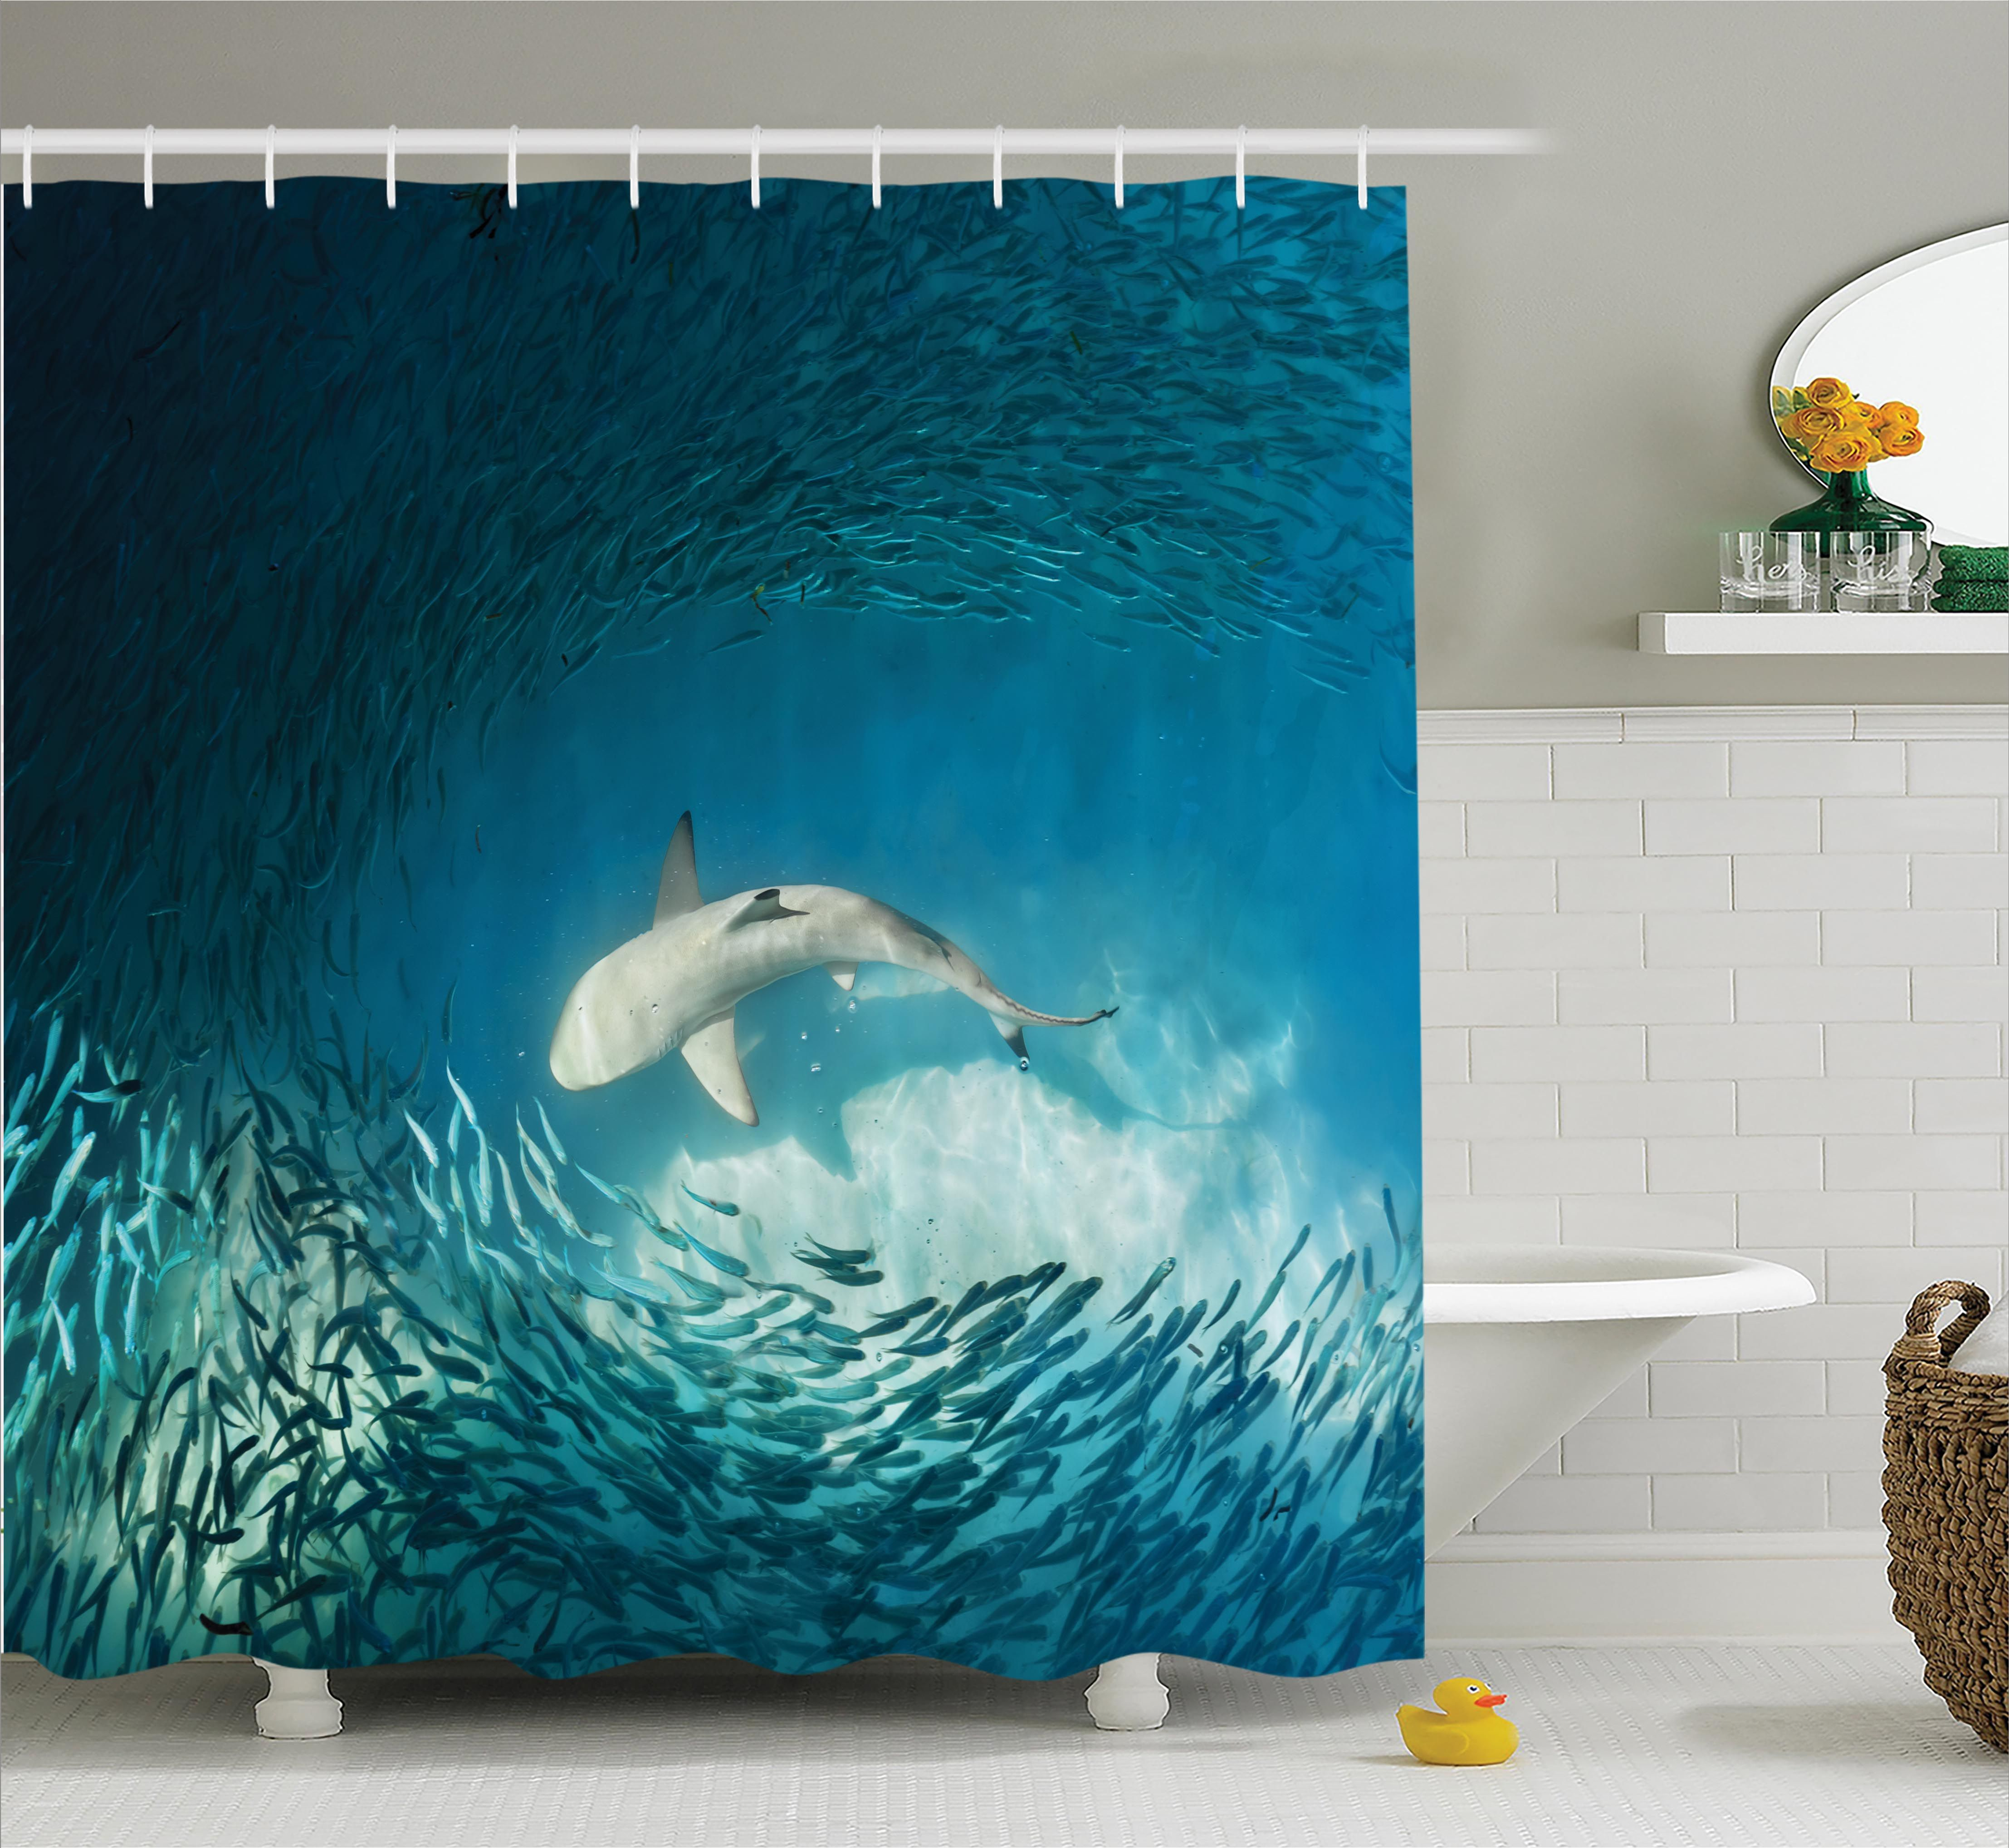 Fish Shower Curtain Set Shark and Small Fish In Ocean Wilderness